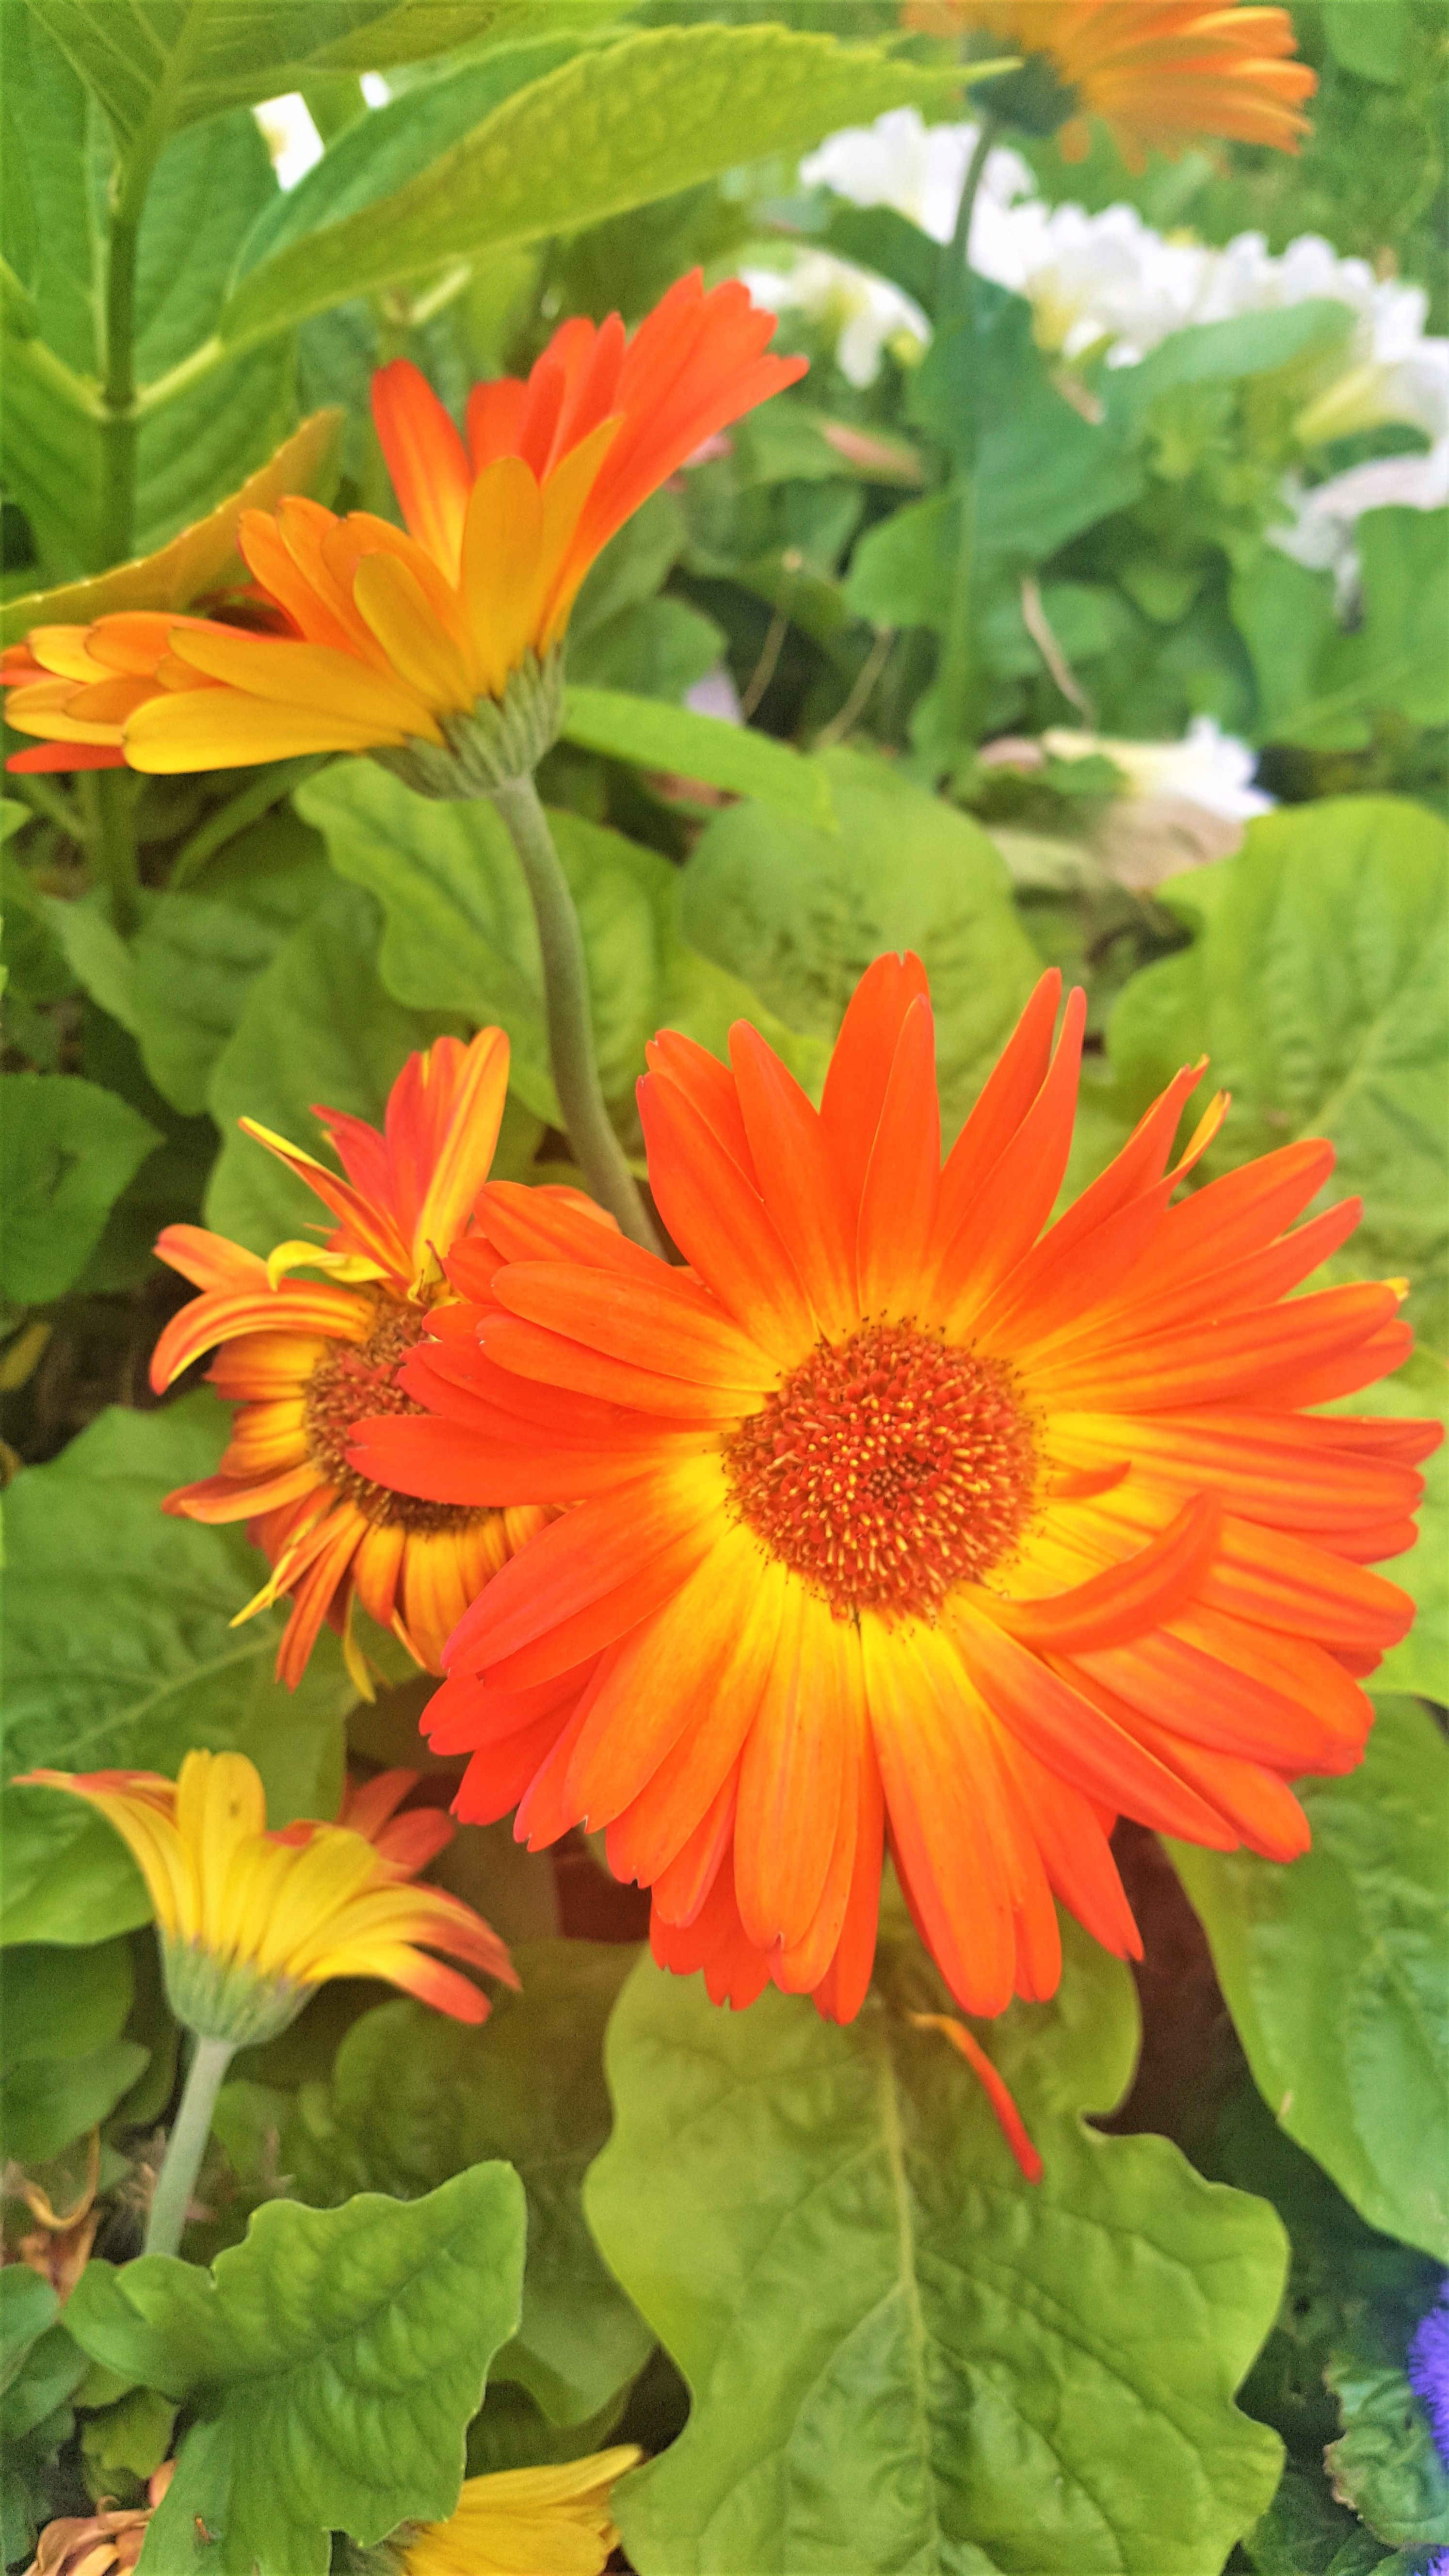 Bright Orange Flower Blooms With Yellow Centre Flowers Blooms